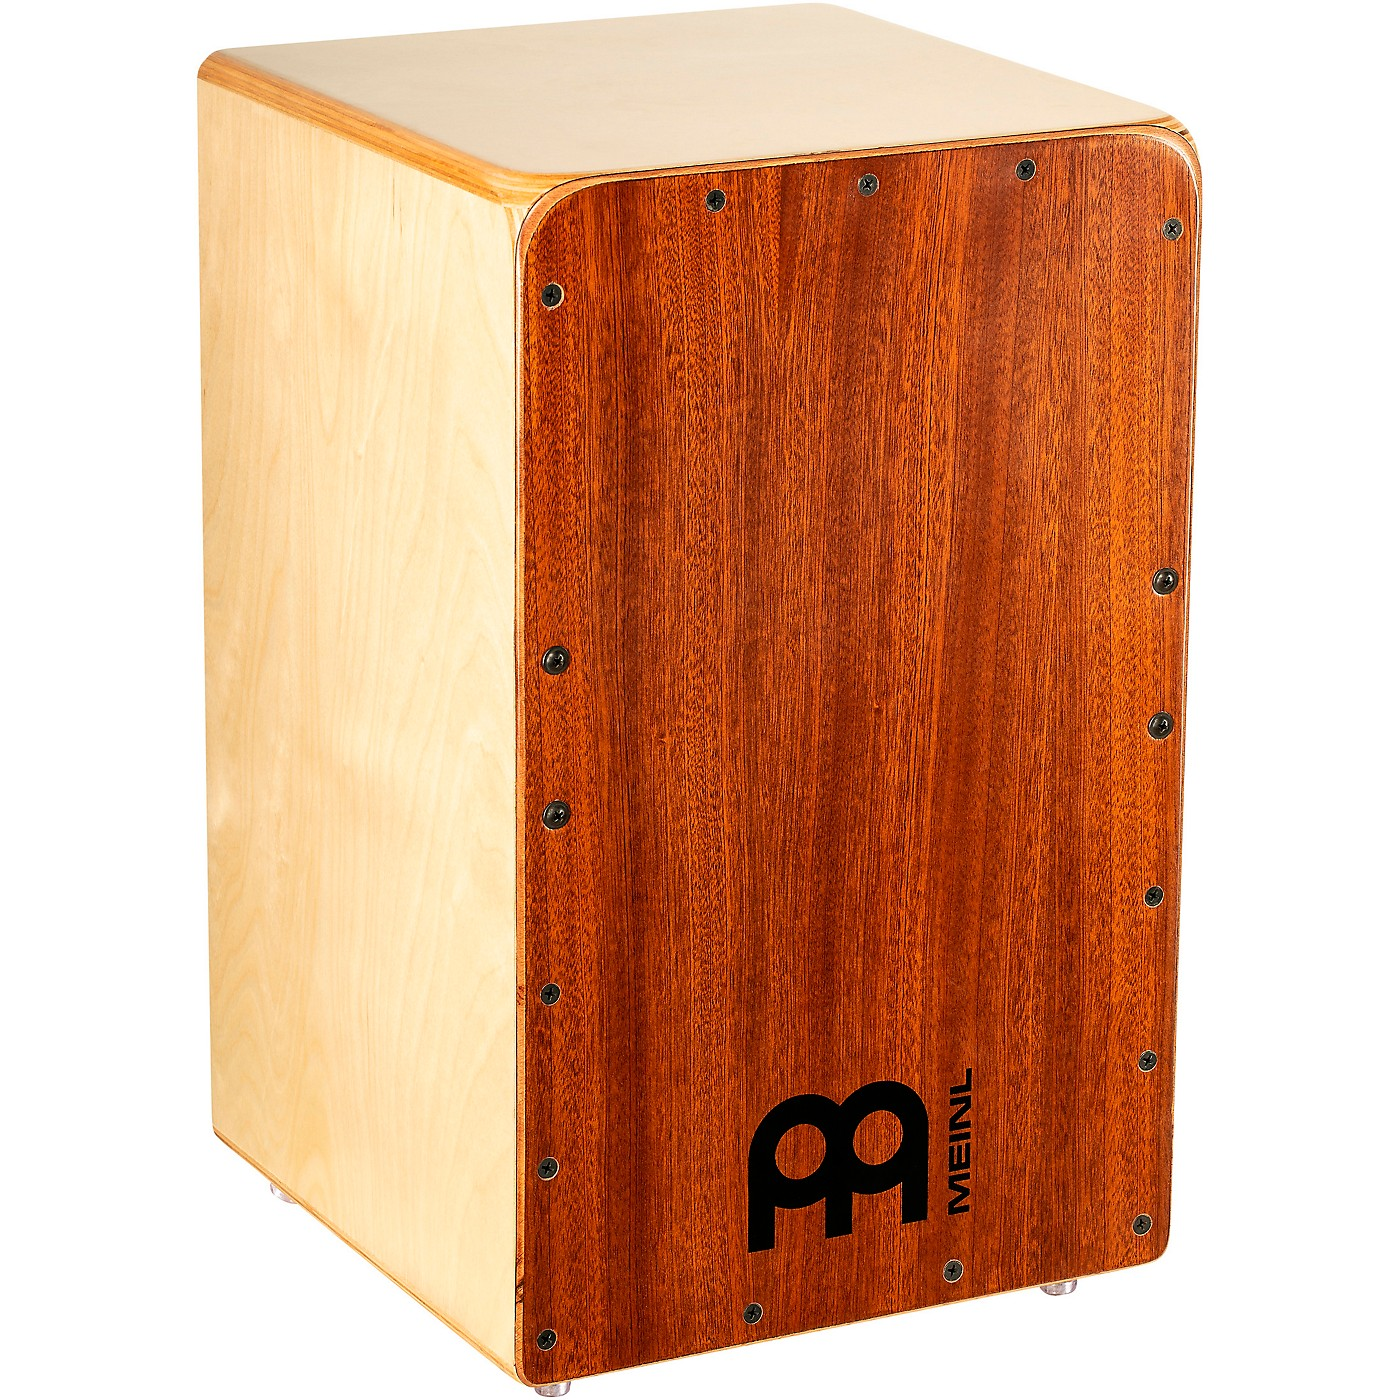 Meinl Woodcraft Series Professional Cajon with Mahogany Frontplate thumbnail